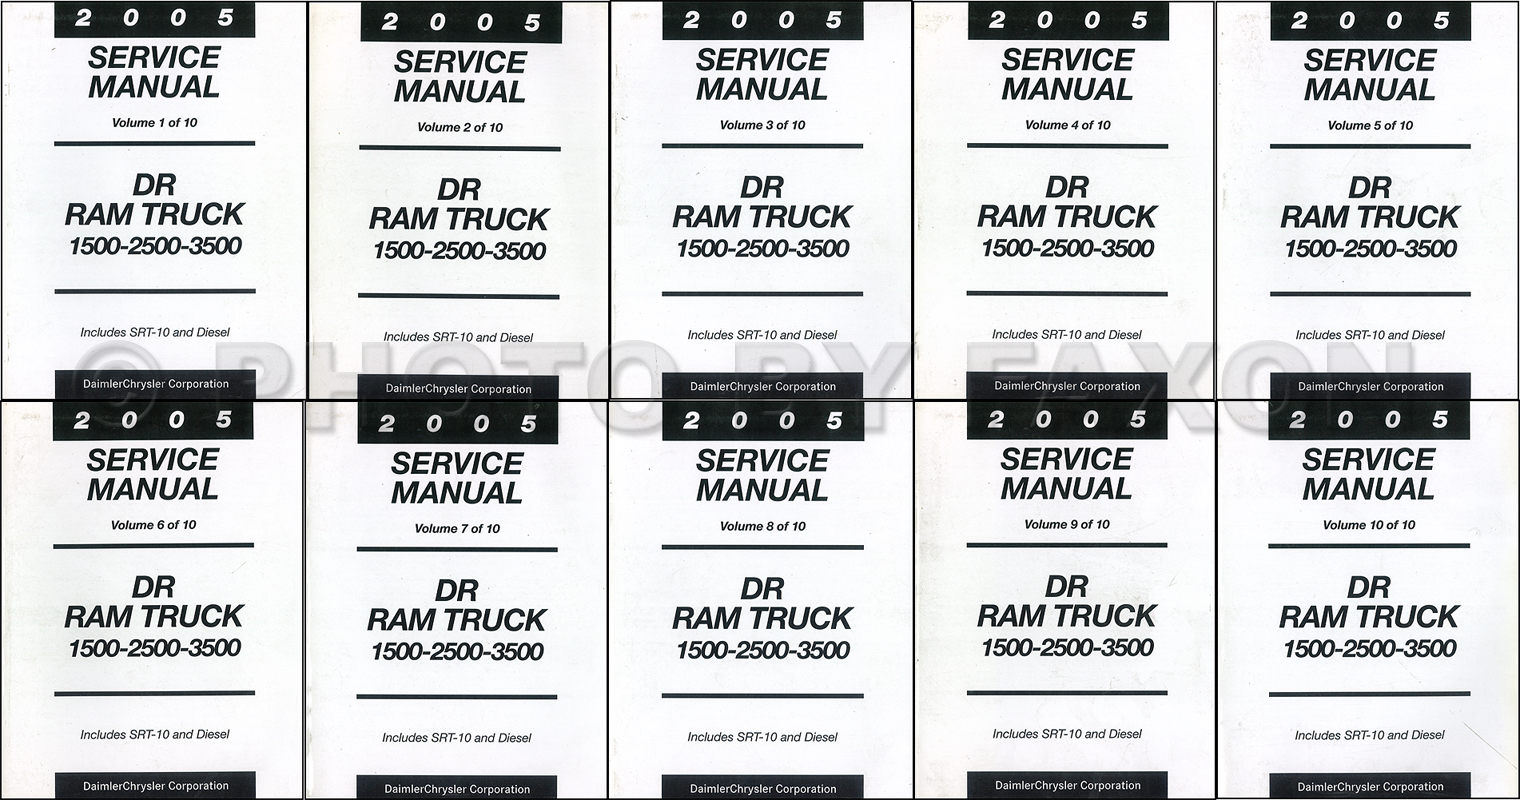 1999 Dodge Truck Wiring Diagram http://www.faxonautoliterature.com/2005-Dodge-Ram-Truck-Wiring-Diagram-Manual-Original-P23682.aspx